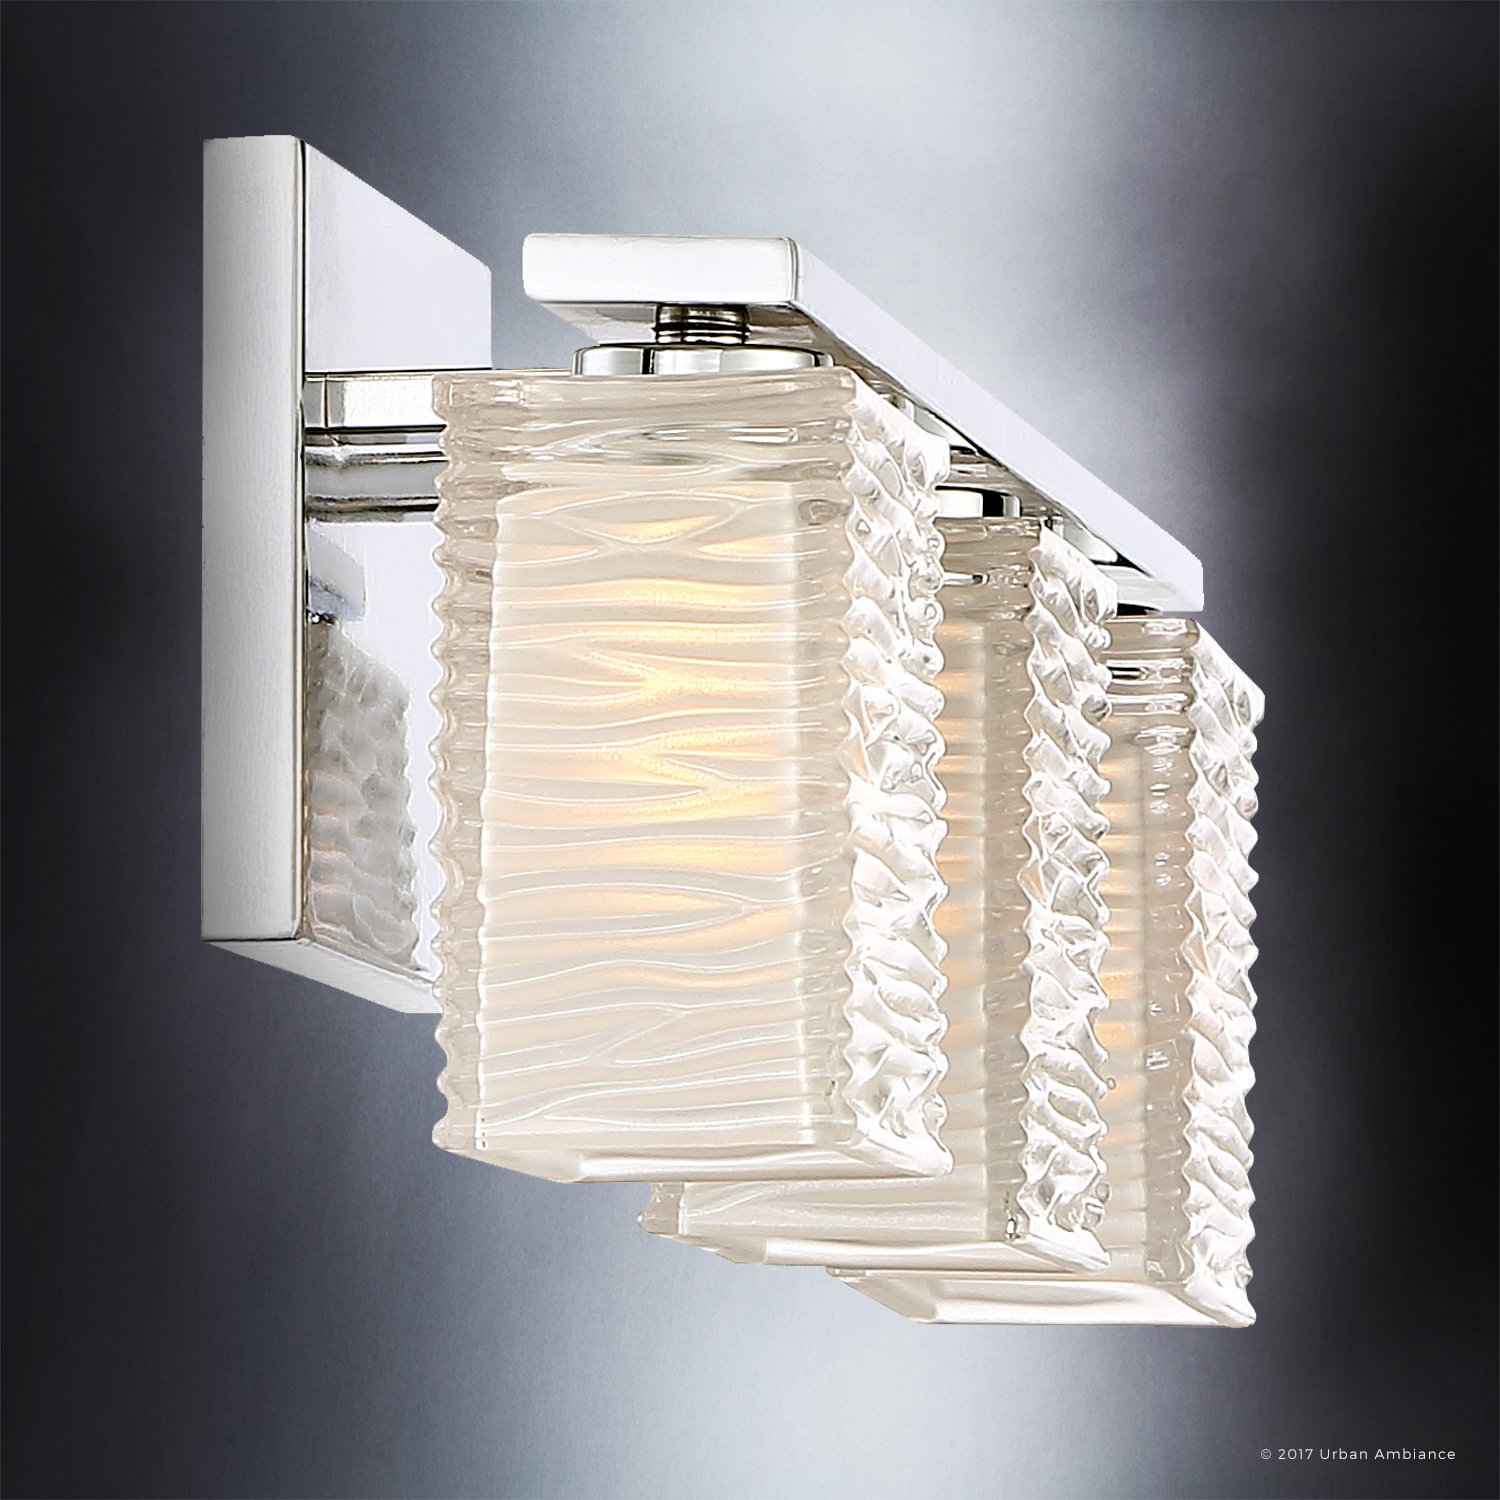 Luxury Modern Bathroom Light, Medium Size: 6.75''H x 22.5''W, with Style Elements, Polished Chrome Finish and Sandblasted Inner, Clear Wavy Outer Glass, G9 LED Technology, UQL2723 by Urban Ambiance by Urban Ambiance (Image #5)